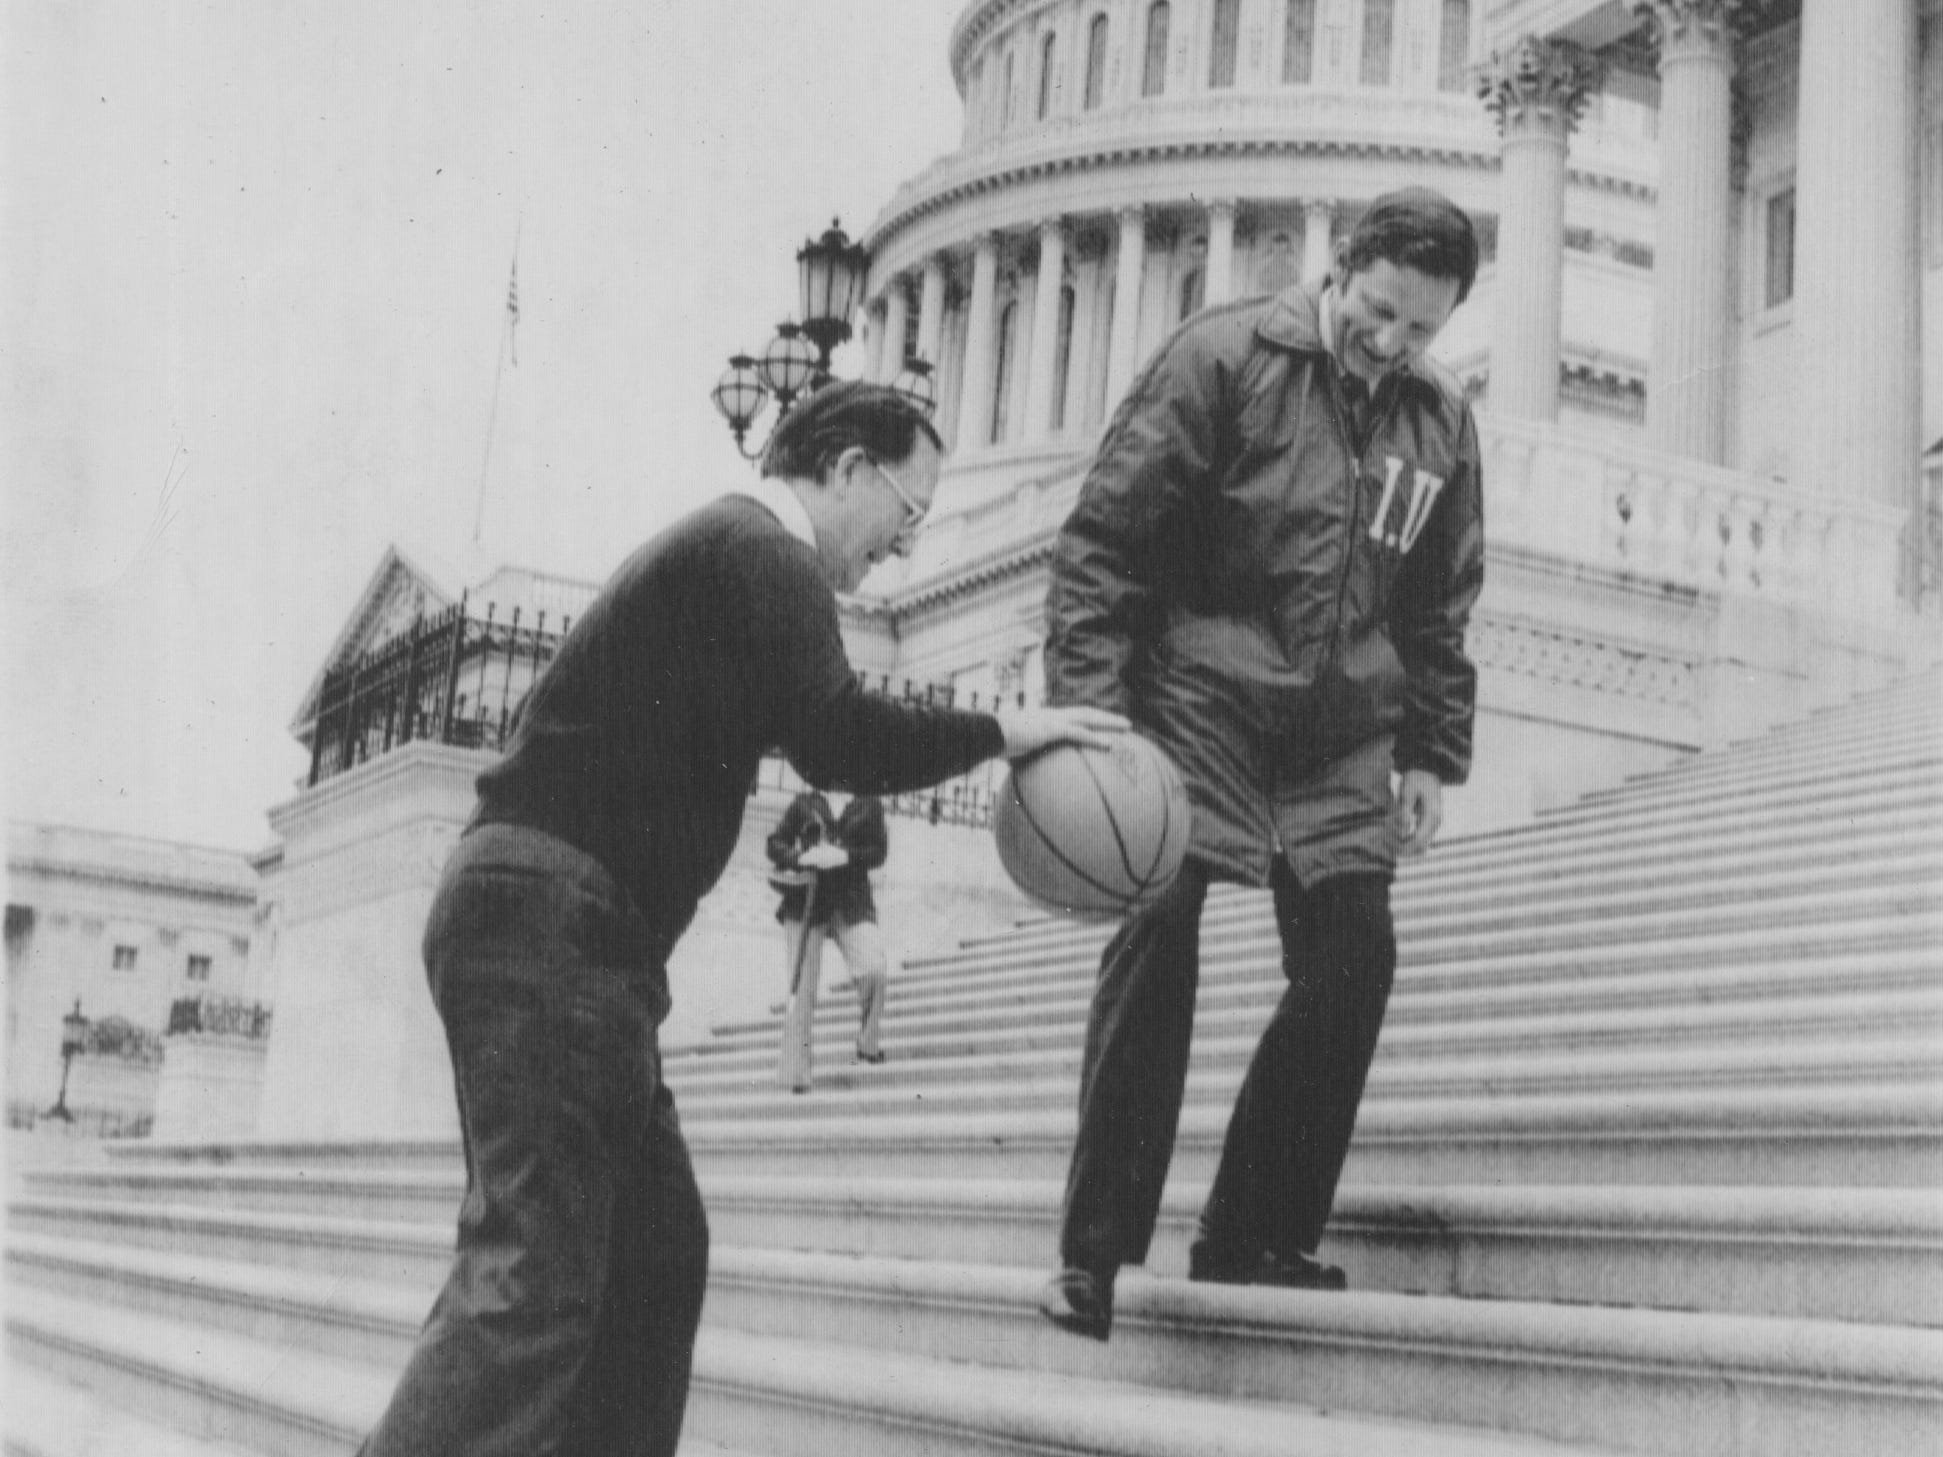 Washington: Indiana Sen. Birch Bayh watches MIchigan Sen. Robert Griffin dribble a basketball all up the steps of the U.S. Capitol on March 30, 1976. Griffin was paying off a bit--he picked the Wolverines to beat the Hoosiers in the NCAA final the following evening. As every sport buff knows, Indiana won, 86-88.